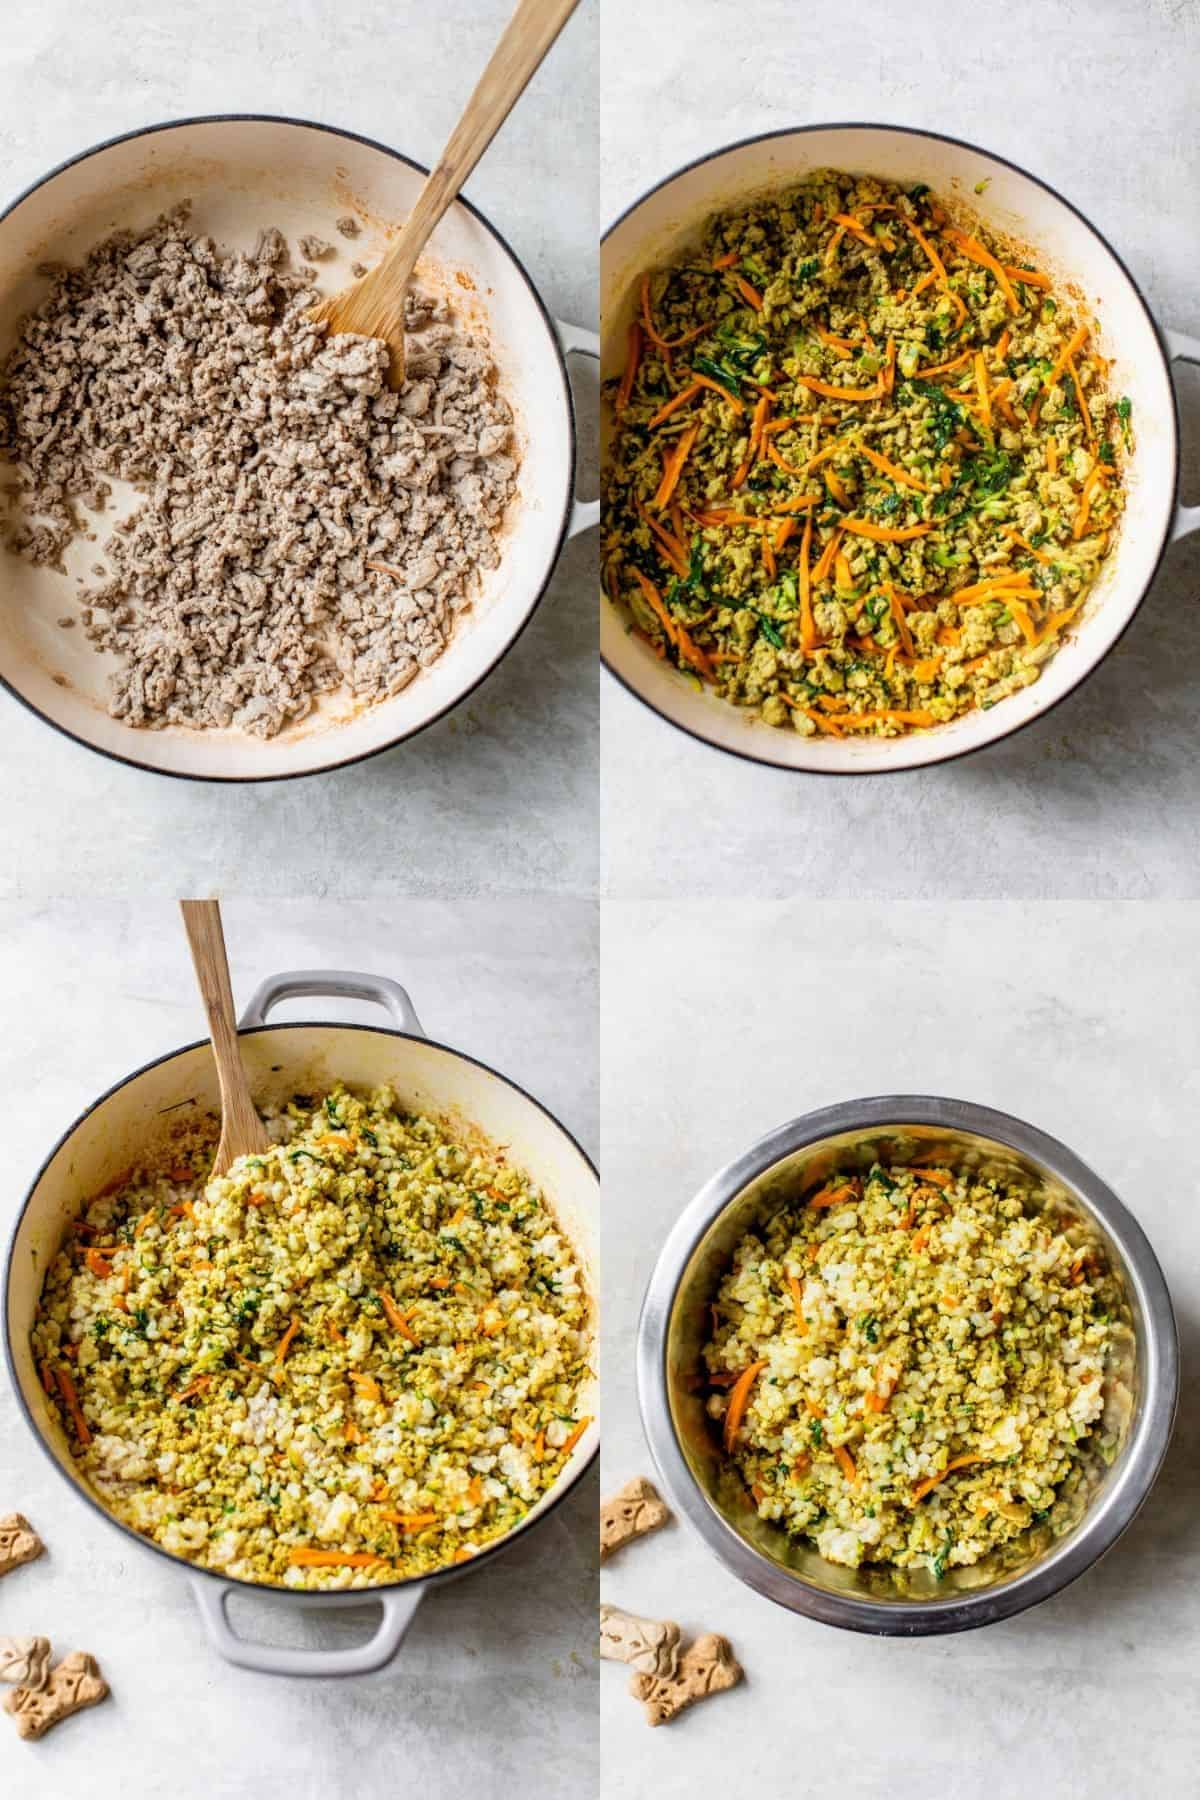 visual steps showing how to make homemade dog food with ground turkey